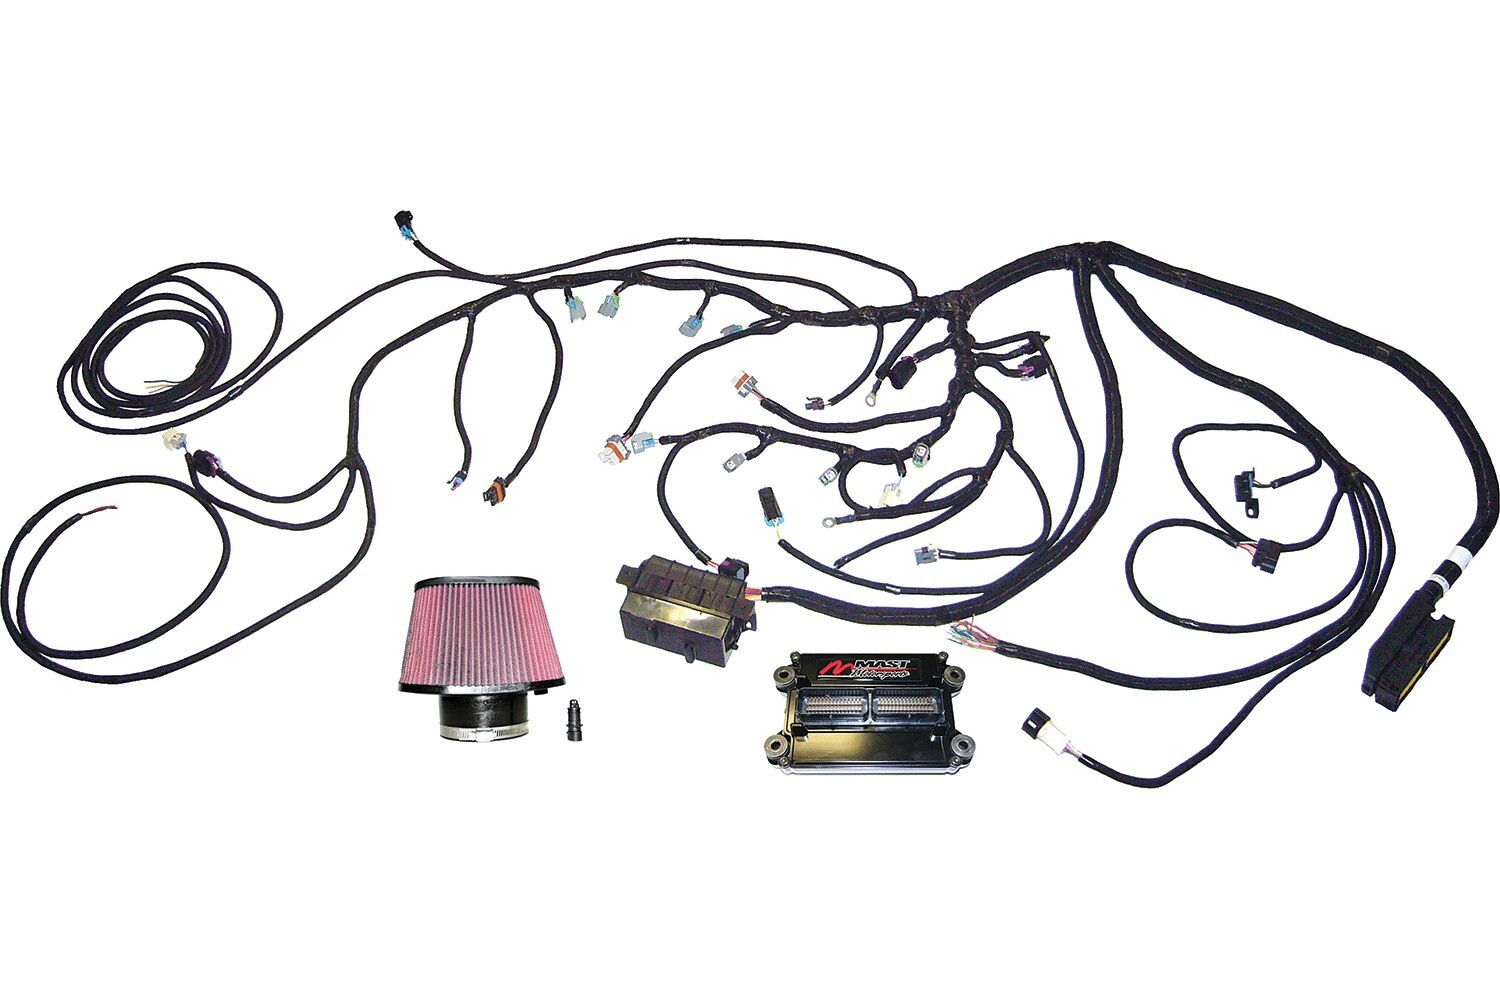 Chevy 5 3 Wiring Harness Free Download Wiring Diagrams Schematics 5.3 Swap Fuel Line 5.3 Vortec Engine Diagram 5.3 Wiring Harness Stand Alone At IT-Energia.com